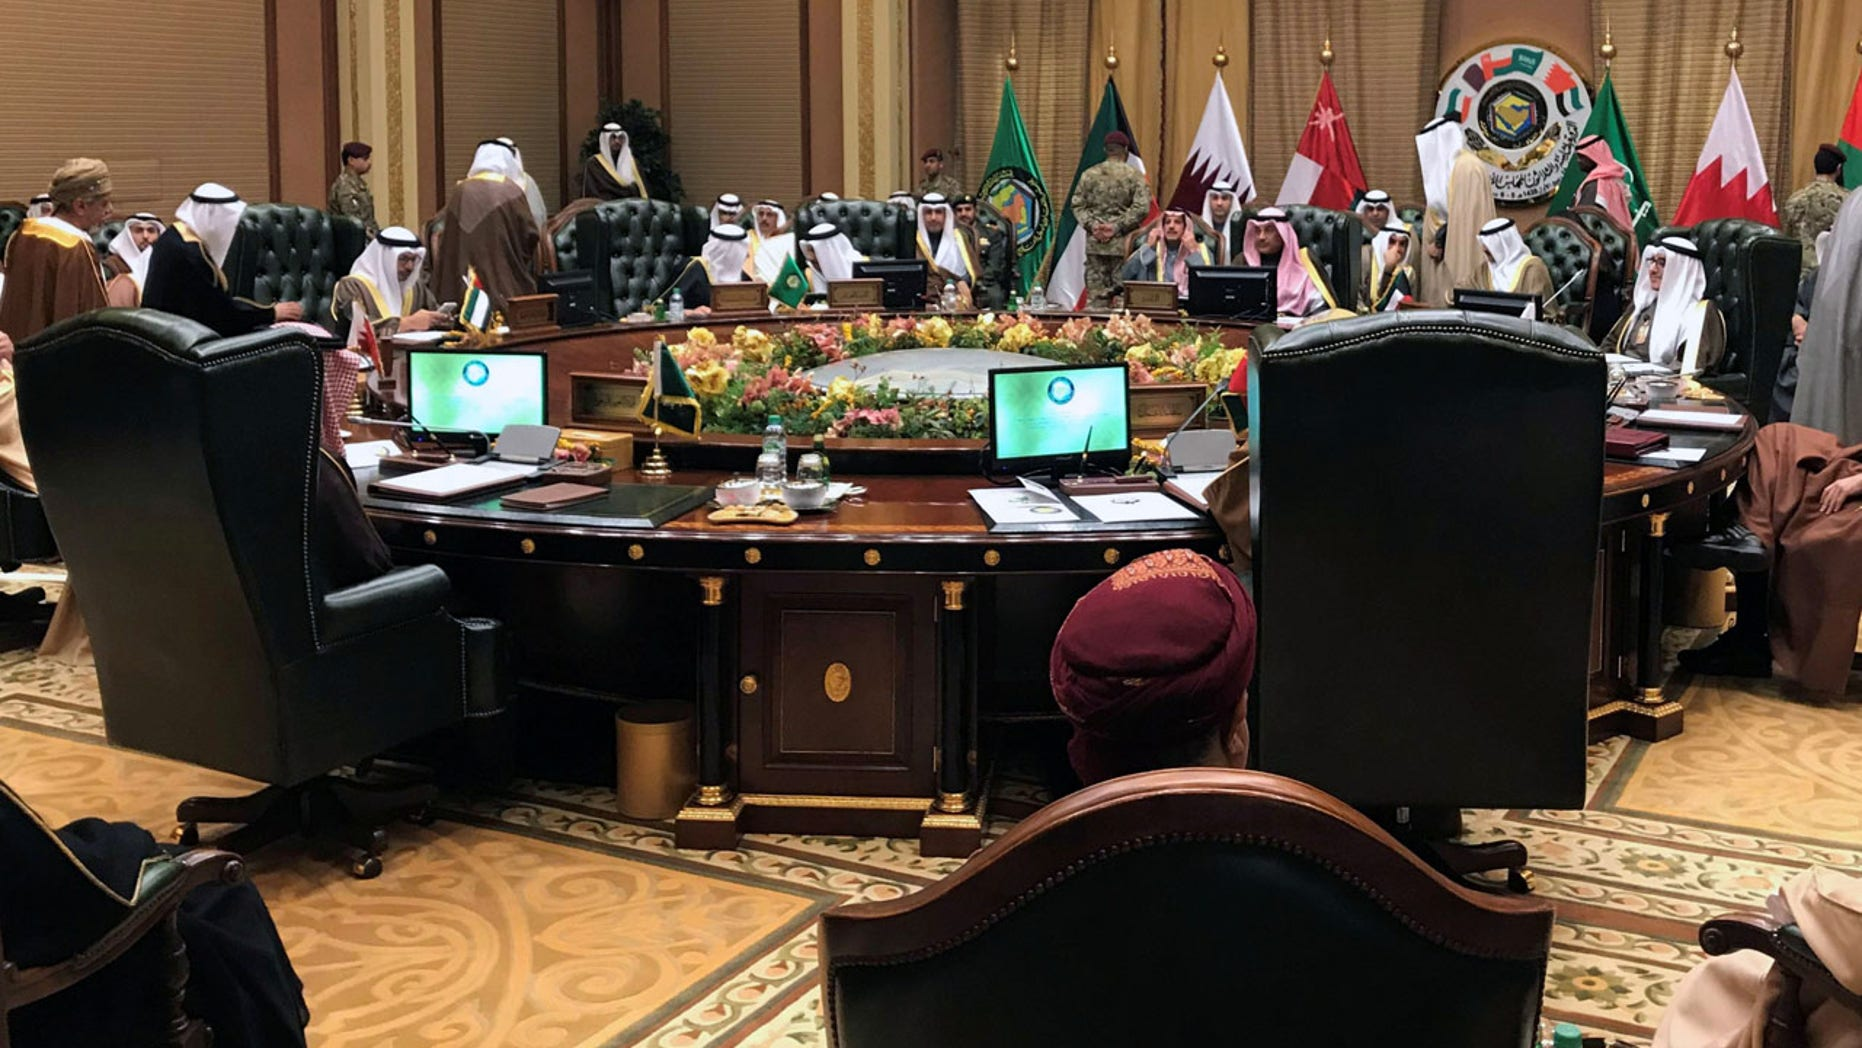 Dec. 4: Foreign Ministers of the Gulf Cooperation Council (GCC) attend a meeting in Bayan Palace, in Kuwait City